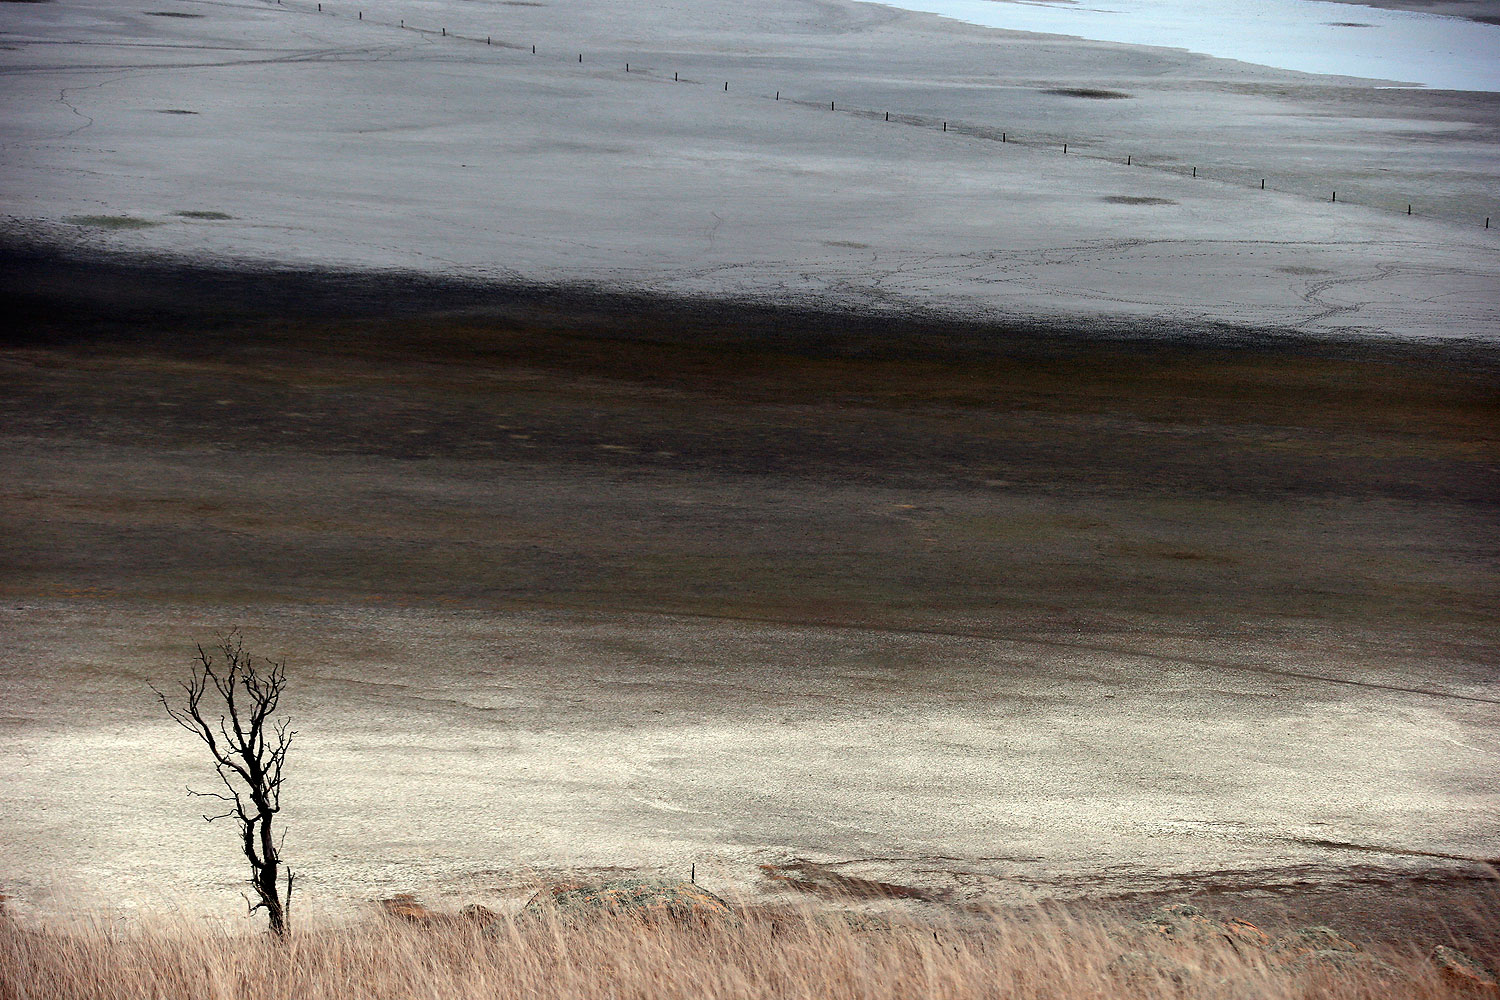 A dead tree stands in front of shallow water and a dried-up area of Lake George, located 50 km (31 miles) north of the Australian capital city of Canberra May 13, 2013